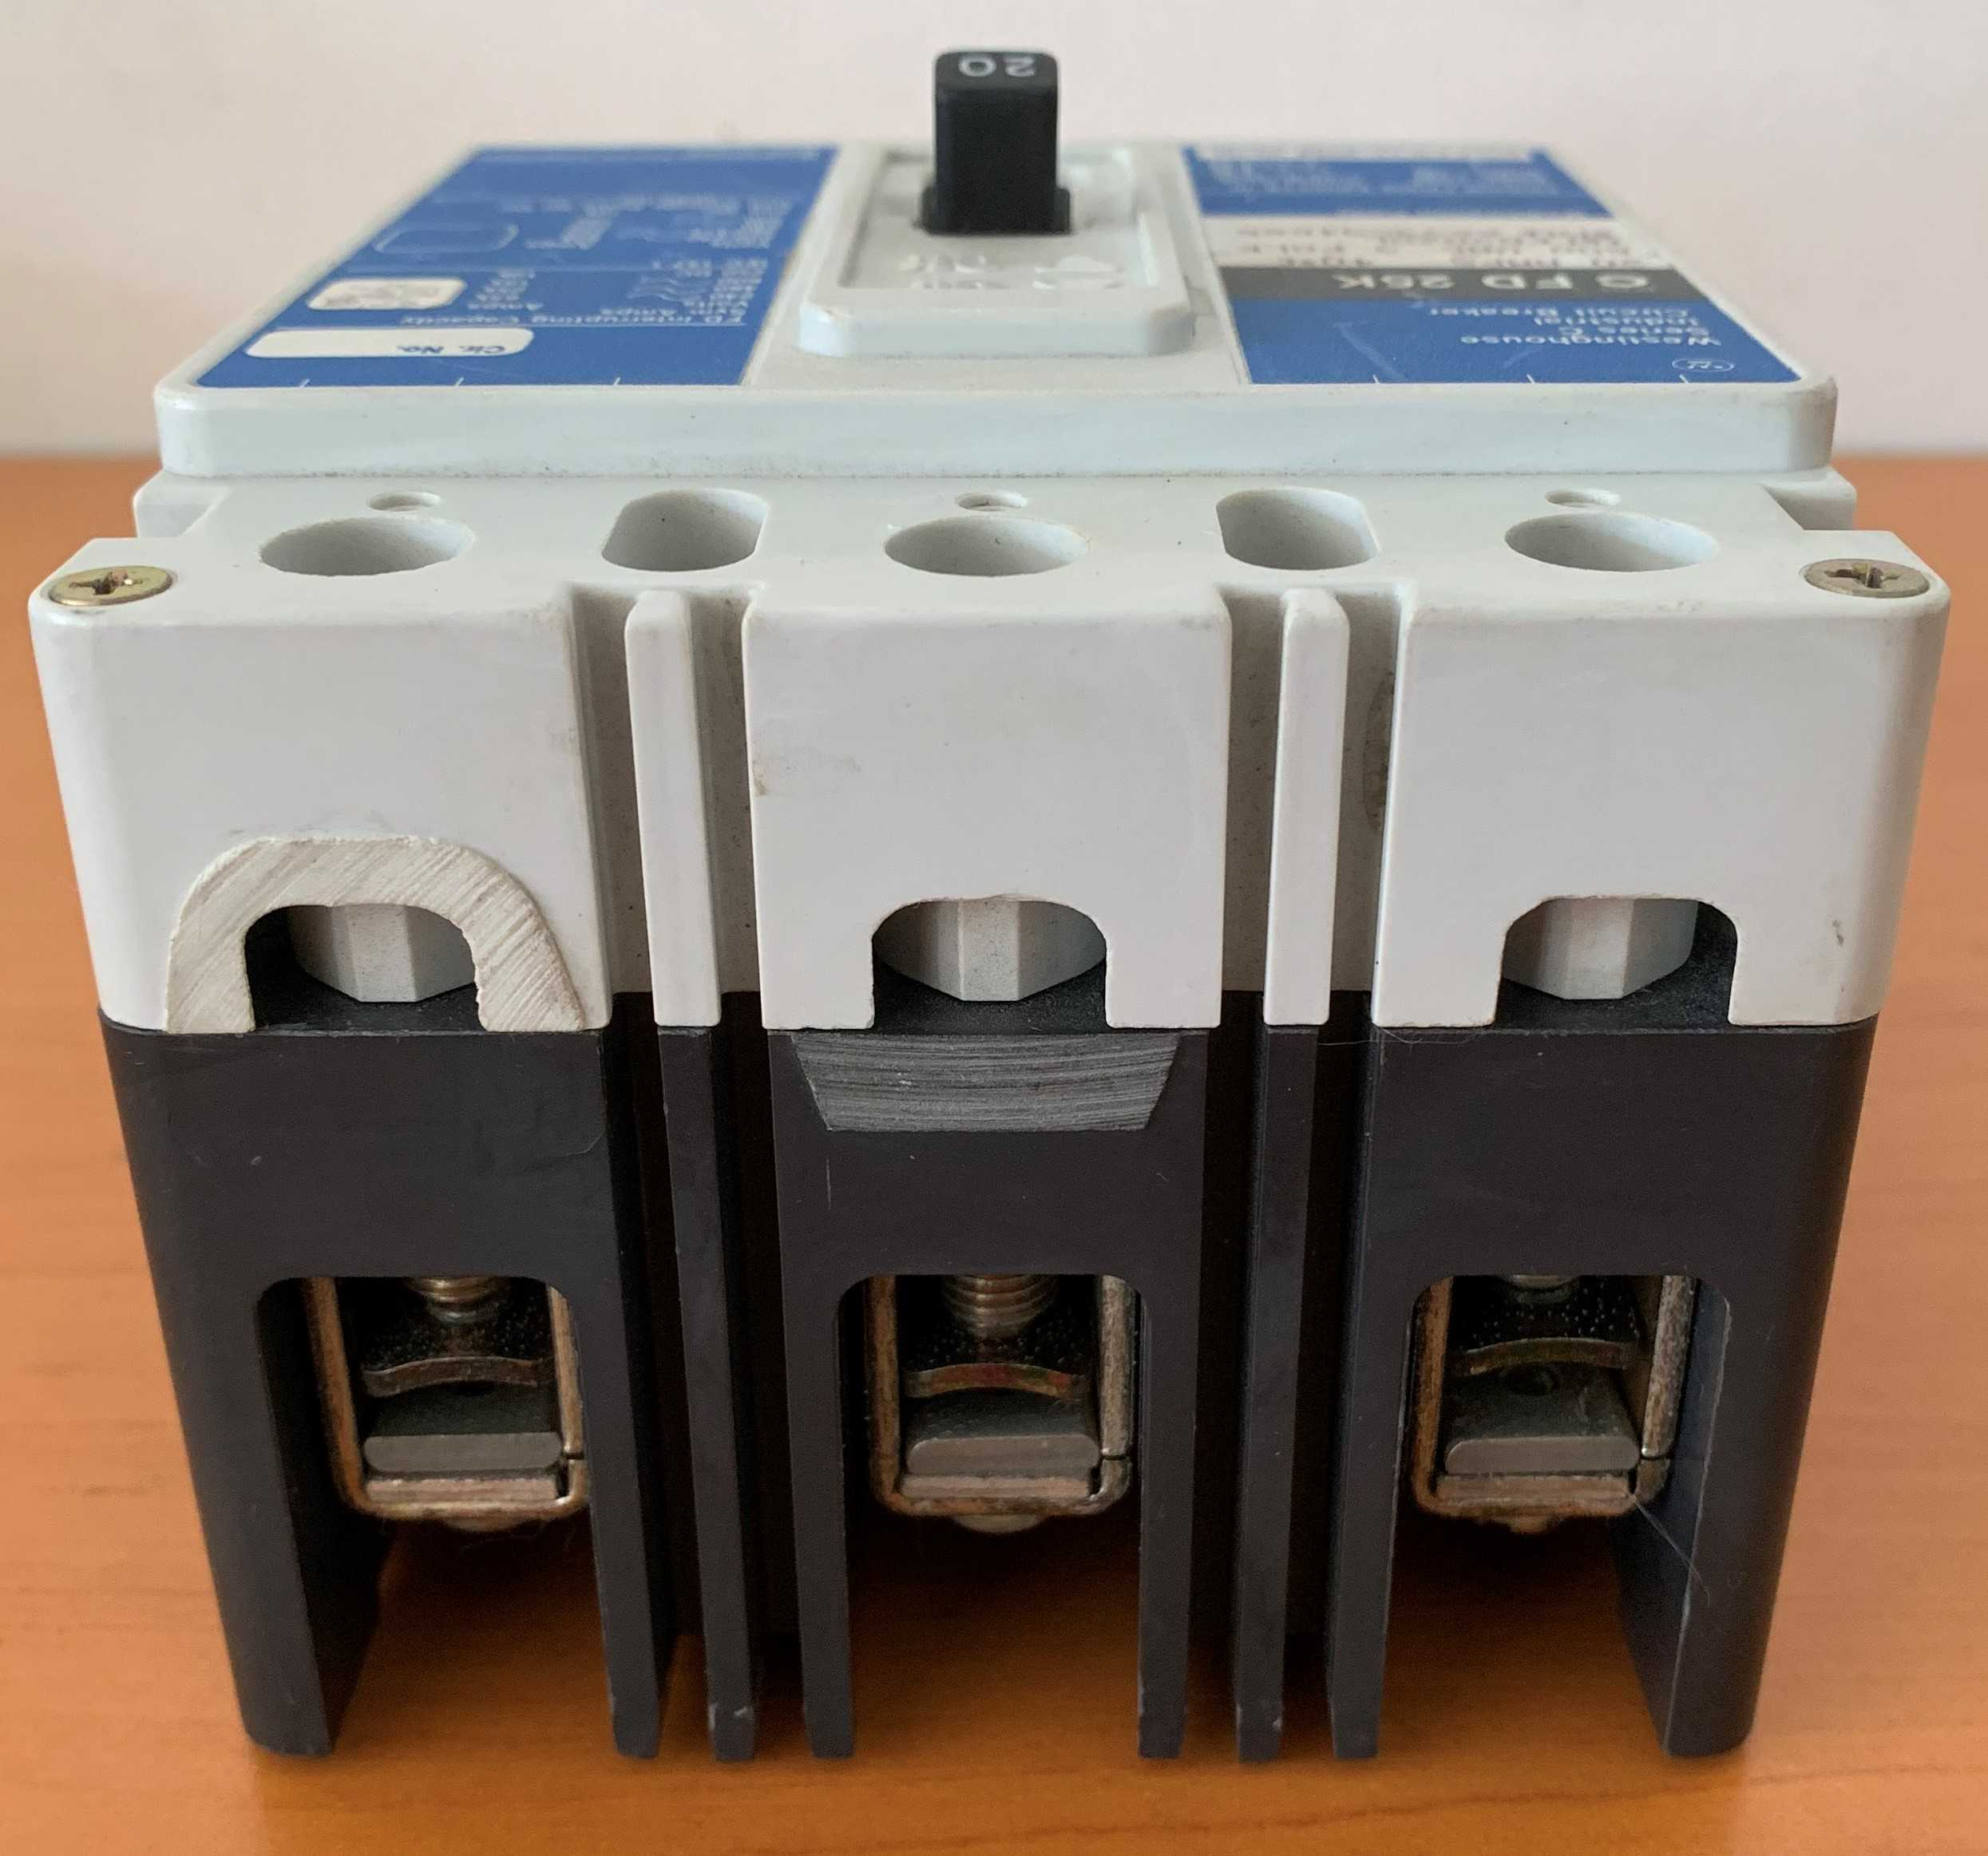 Breaker Superficial 3 x 20 Amperios. TQD. Modelo C FD 25K. Marca: WESTINGHOUSE